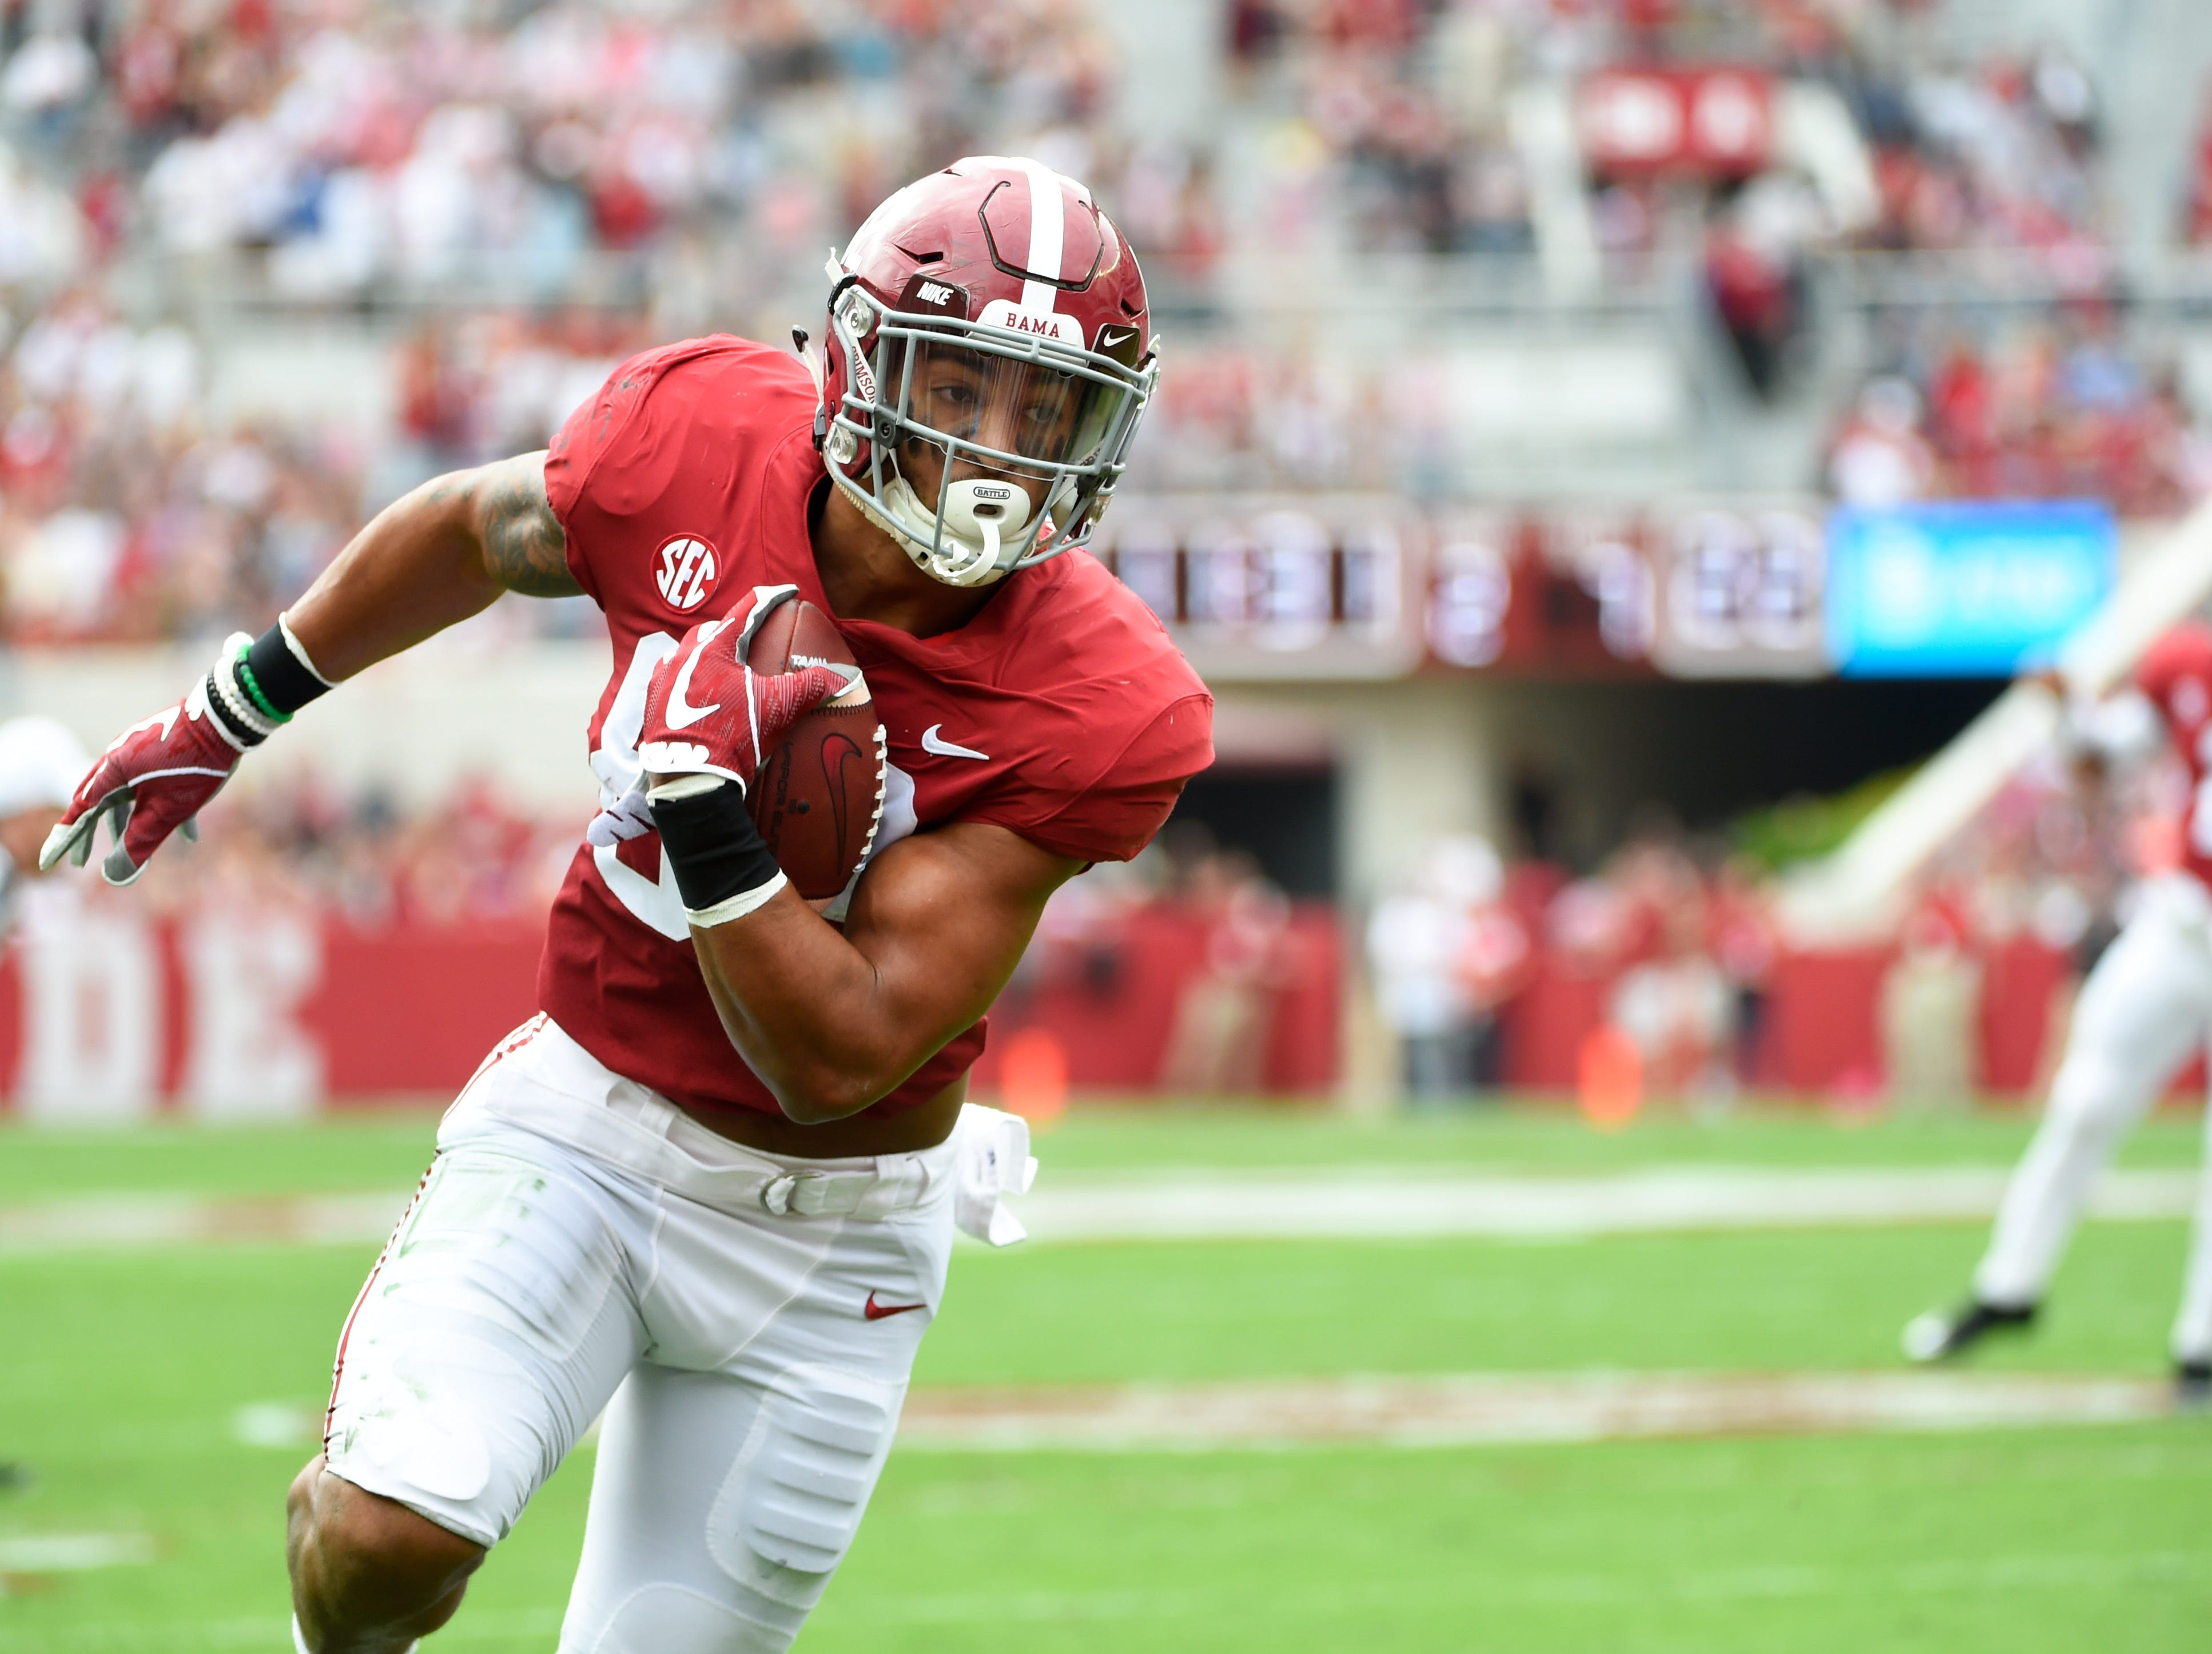 Nov 18, 2017; Tuscaloosa, AL, USA; Alabama Crimson Tide tight end Irv Smith Jr. (82) scores a touchdown against the Mercer Bears during the first quarter at Bryant-Denny Stadium. Mandatory Credit: Adam Hagy-USA TODAY Sports